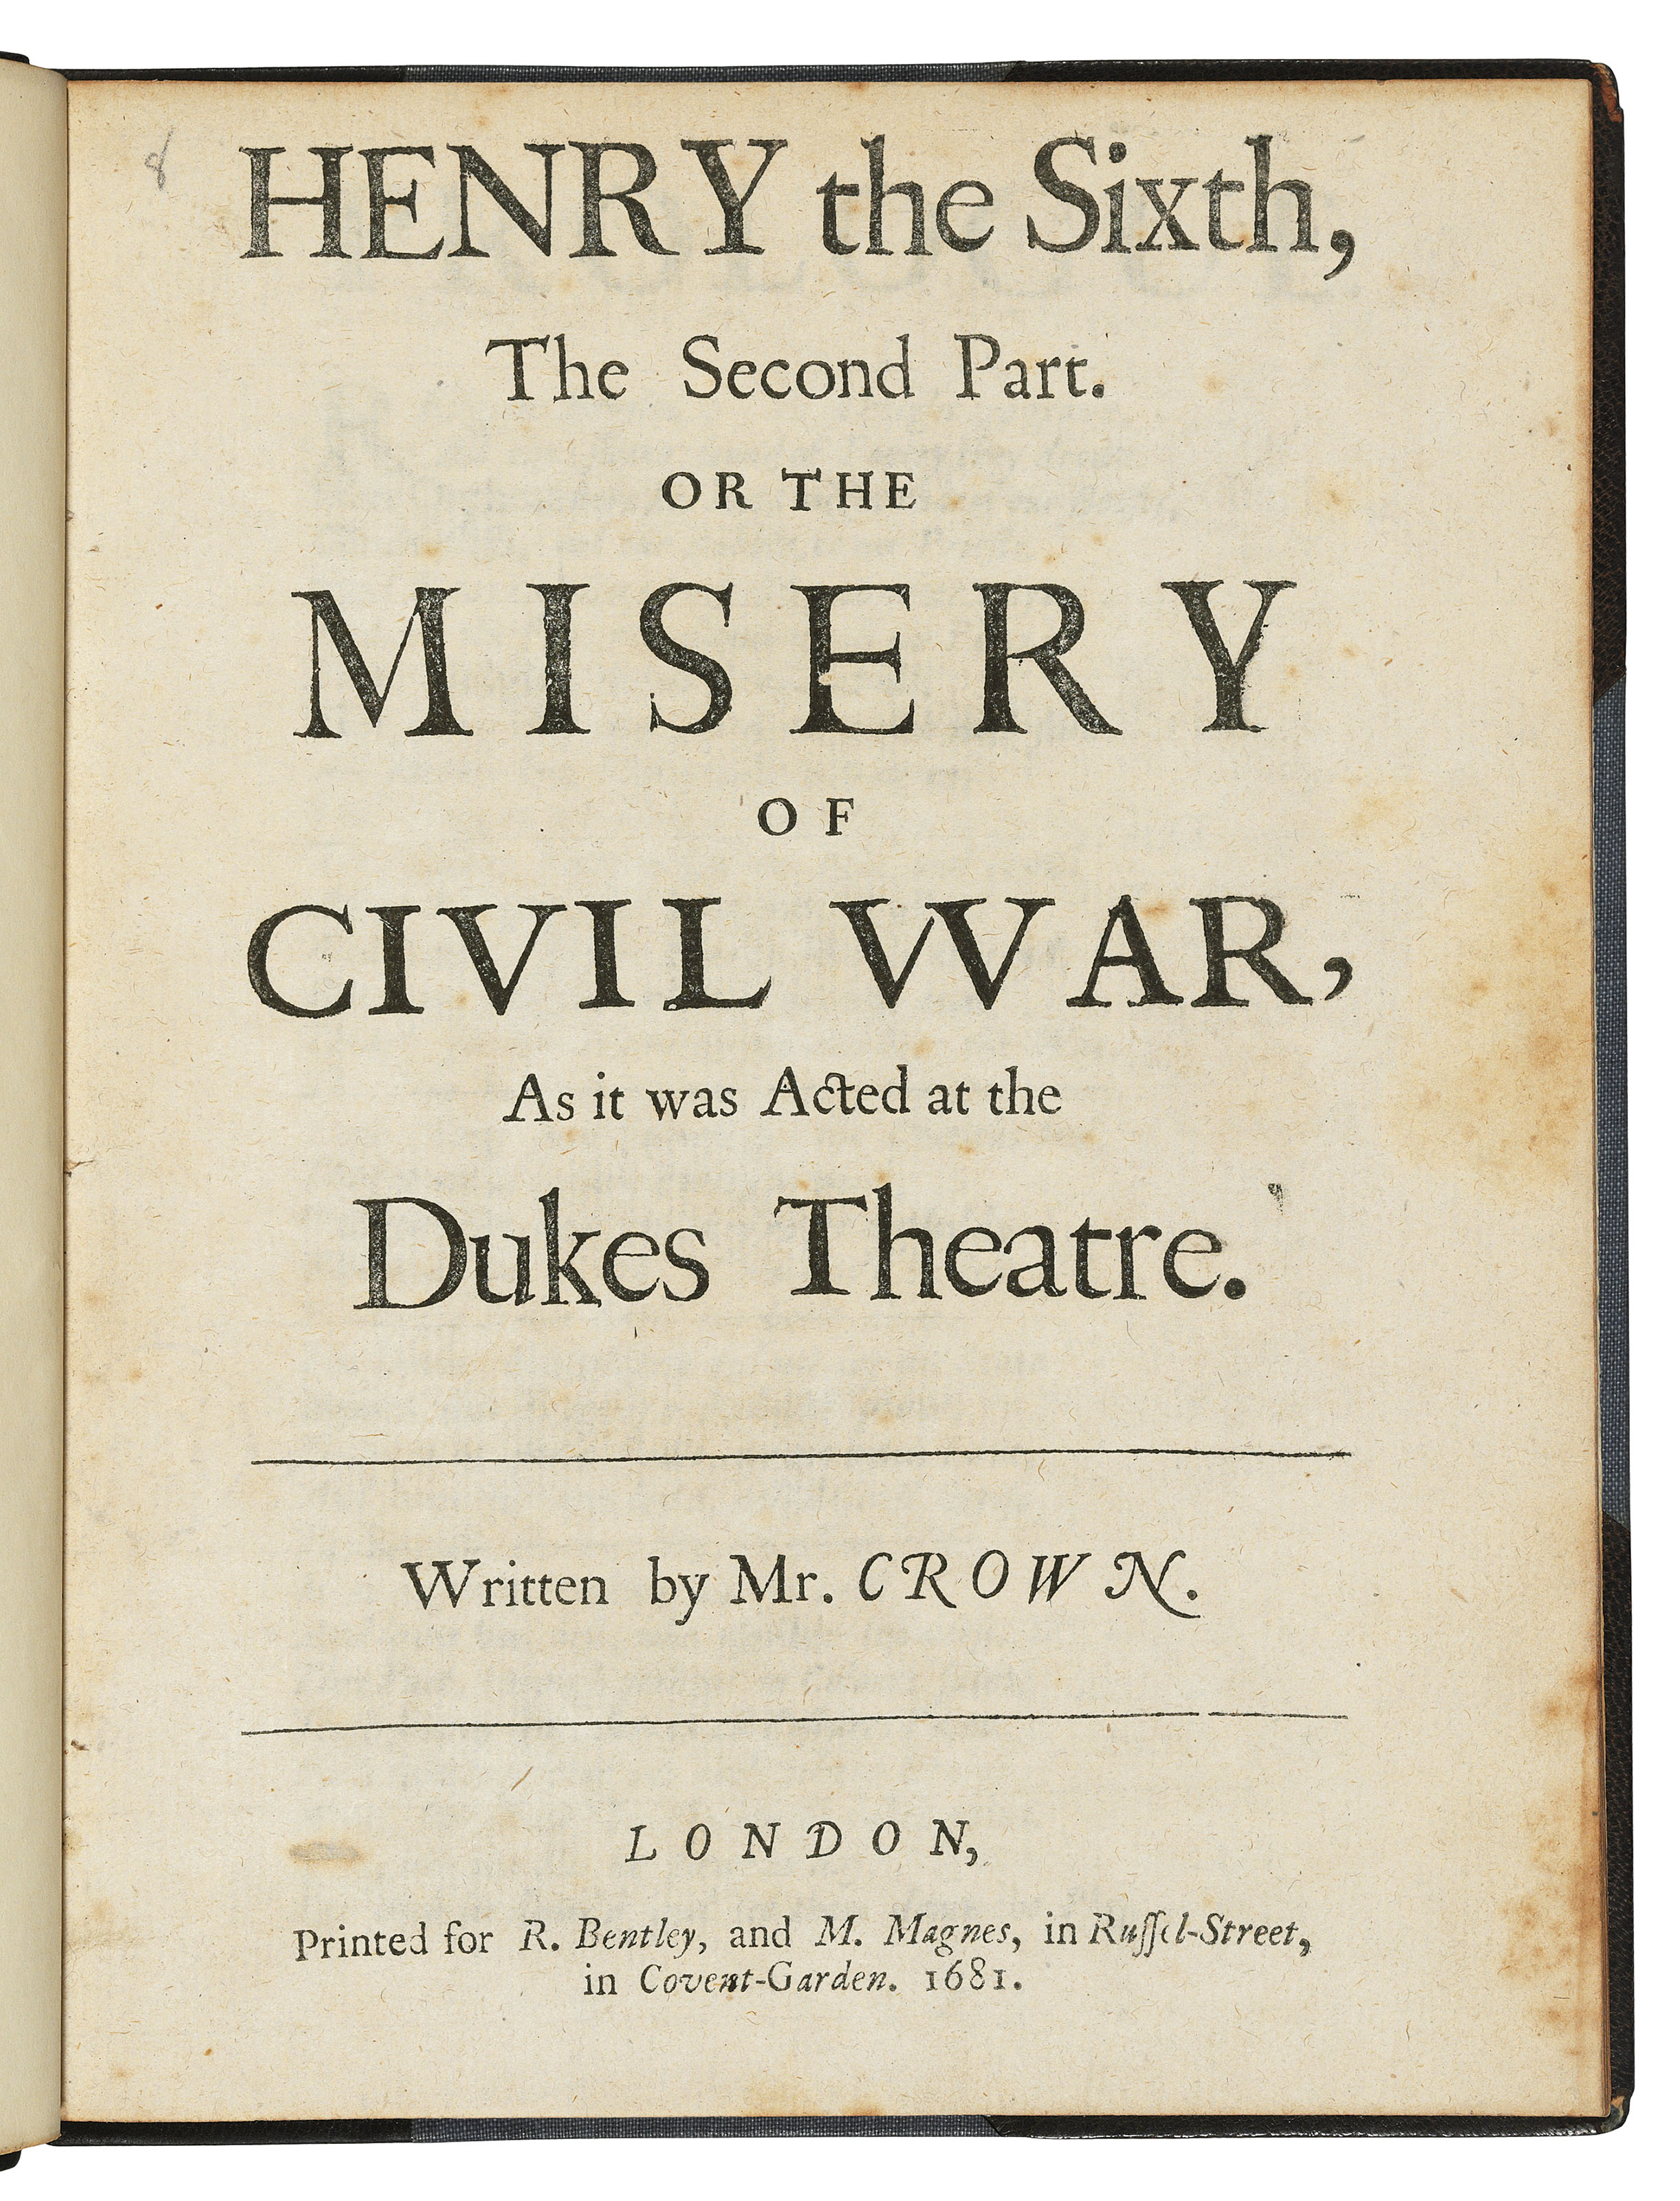 [SHAKESPEARE, William (1564-1616)] – CROWN[E], John (1641-1712). Henry the Sixth, The First Part. With the Murder of Humphrey Duke of Glocester. As it was Acted at the Dukes Theatre. – Henry the Sixth, The Second Part. Or the Misery of Civil War. London: Printed for R. Bentley and M. Magnes, 1681.